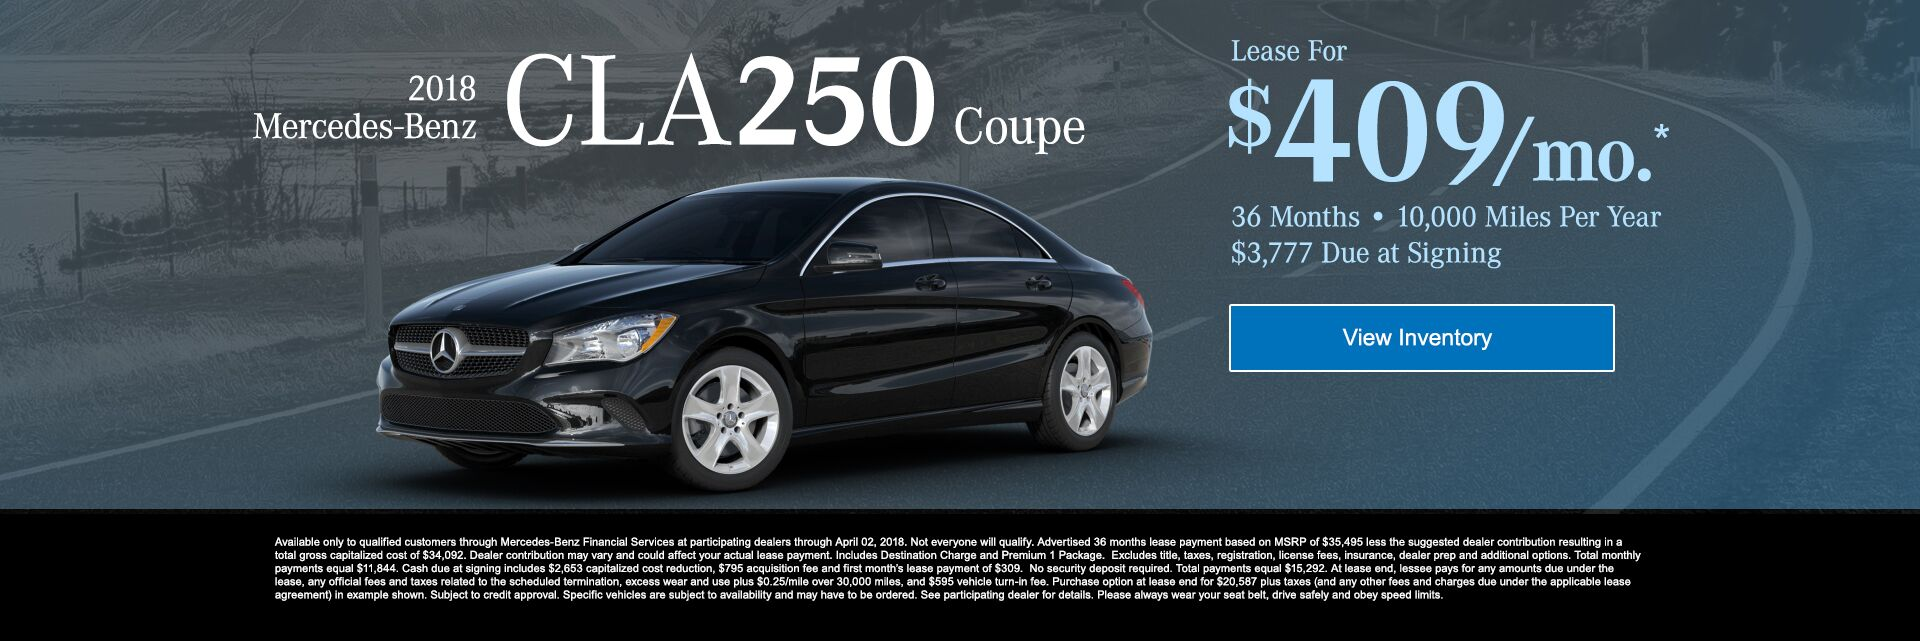 2018 Mercedes-Benz CLA250